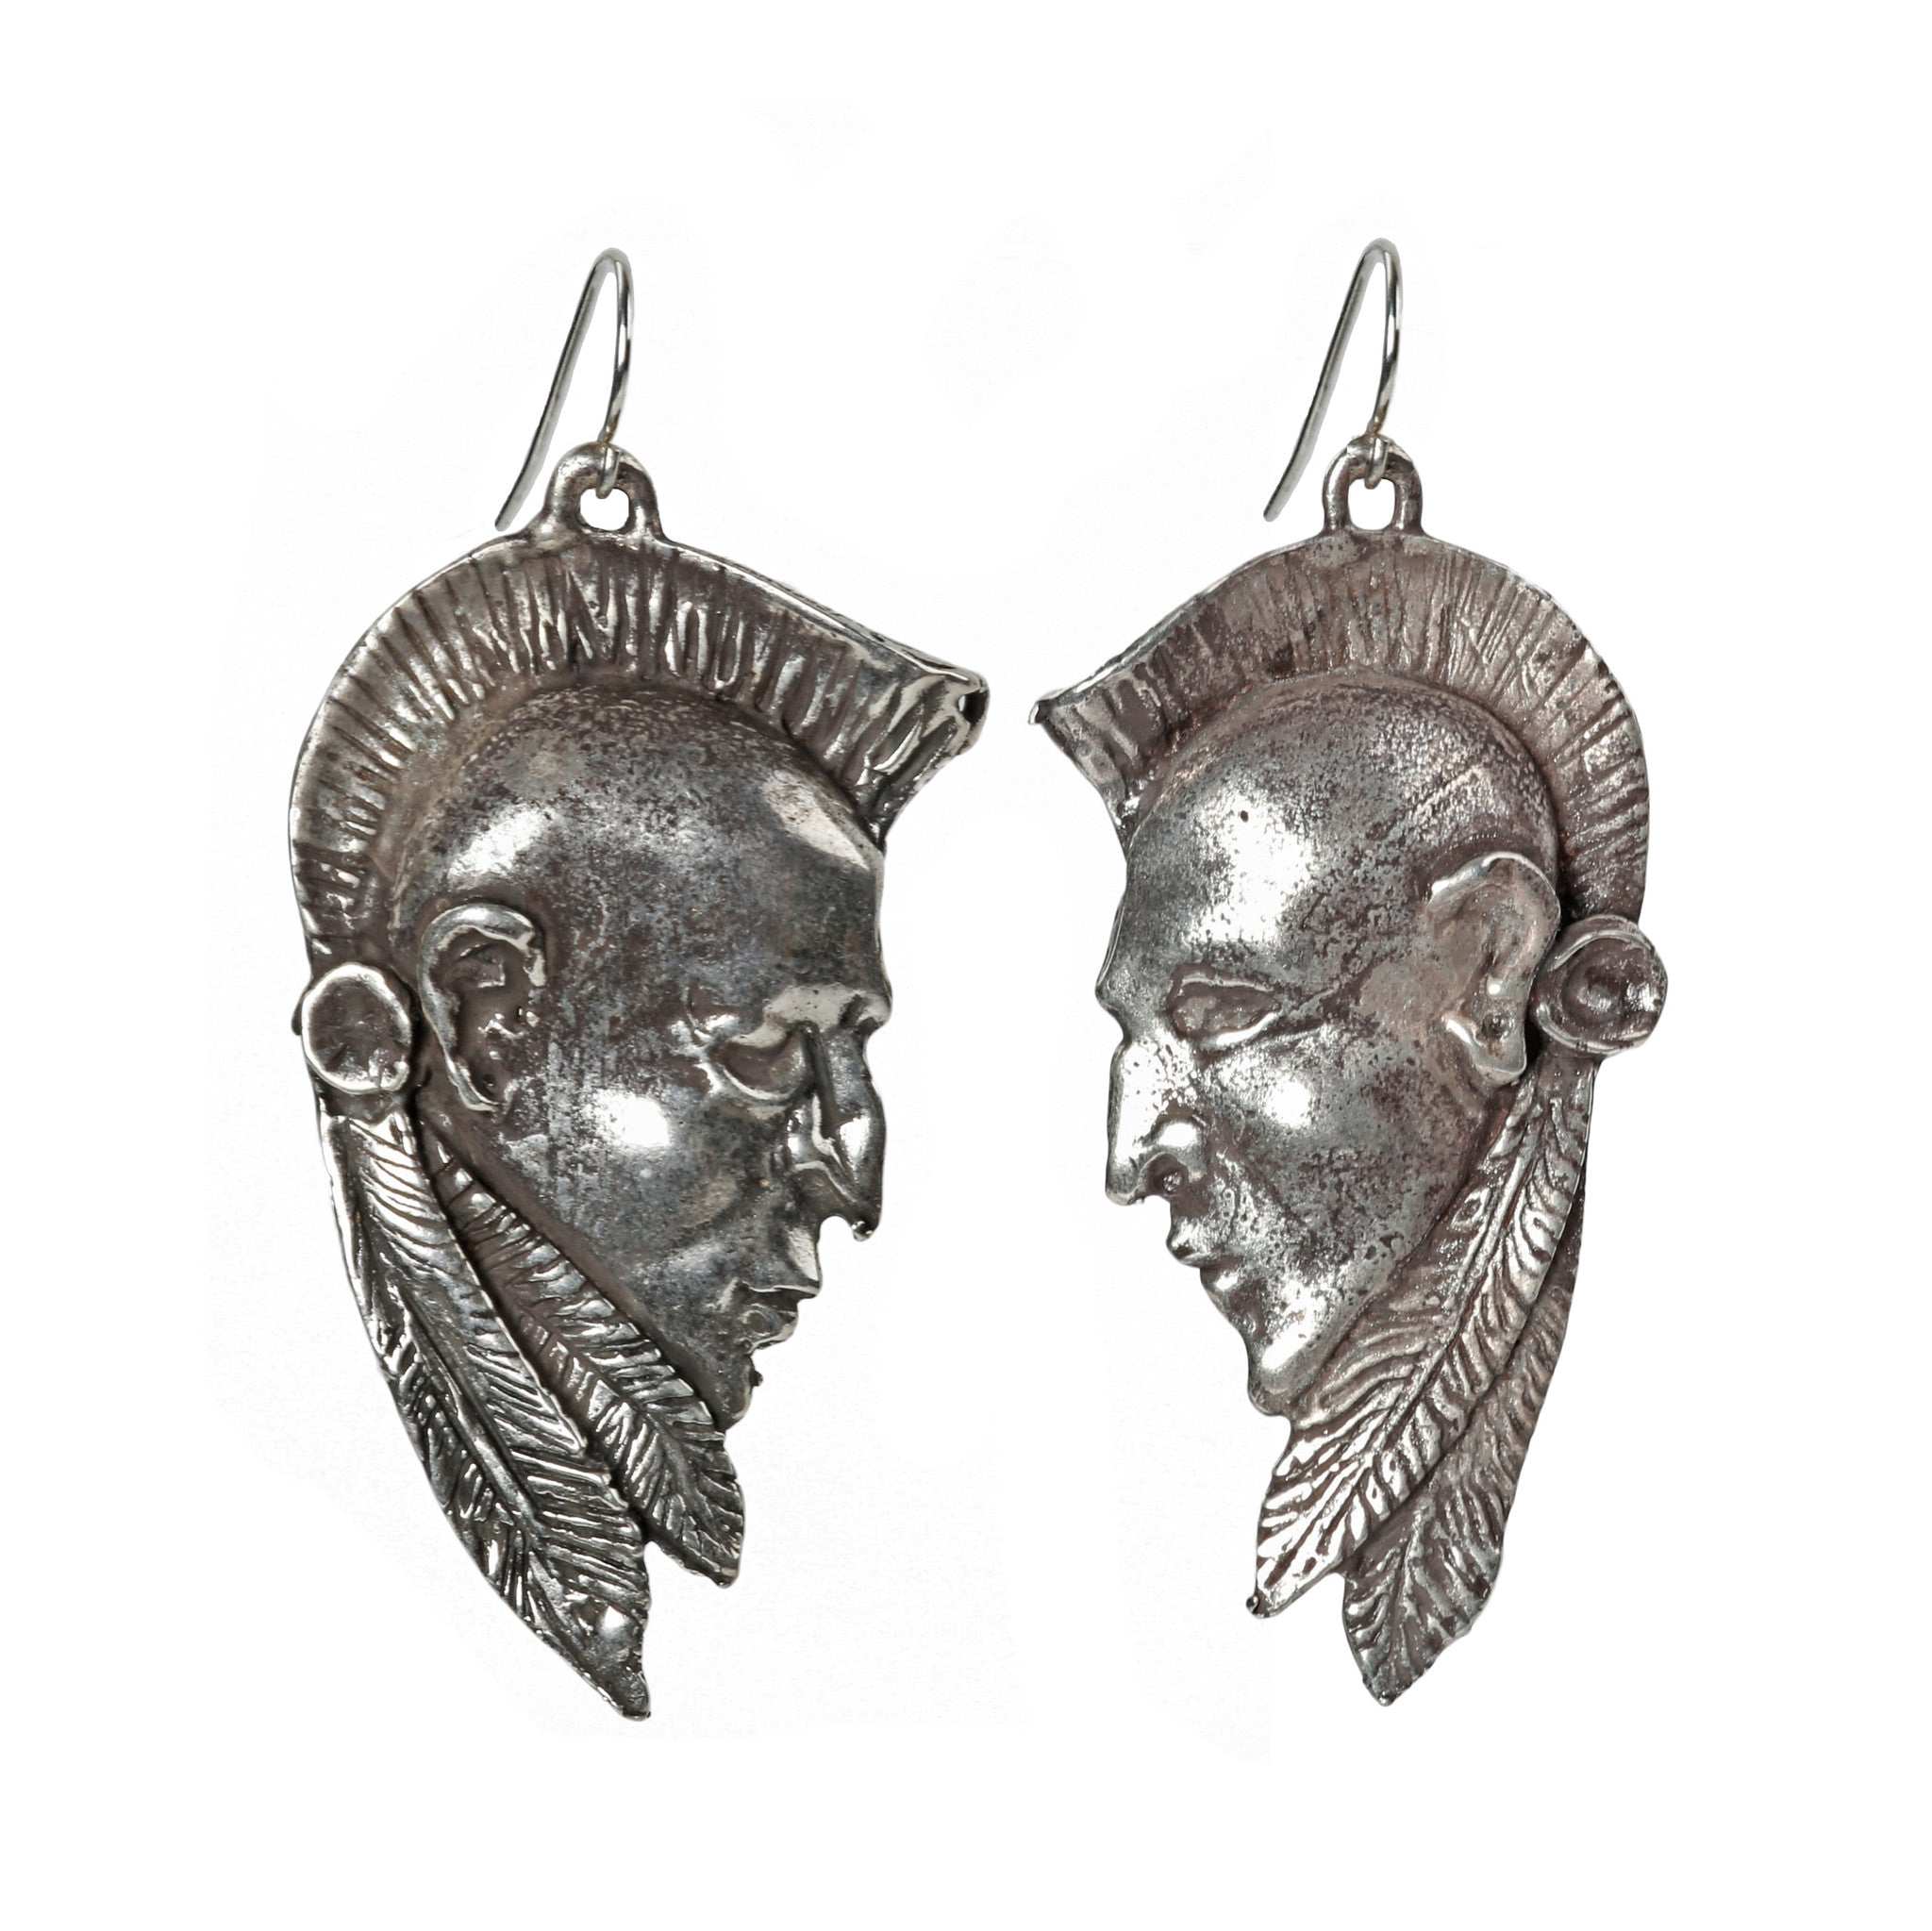 Mohawk Chief Earrings